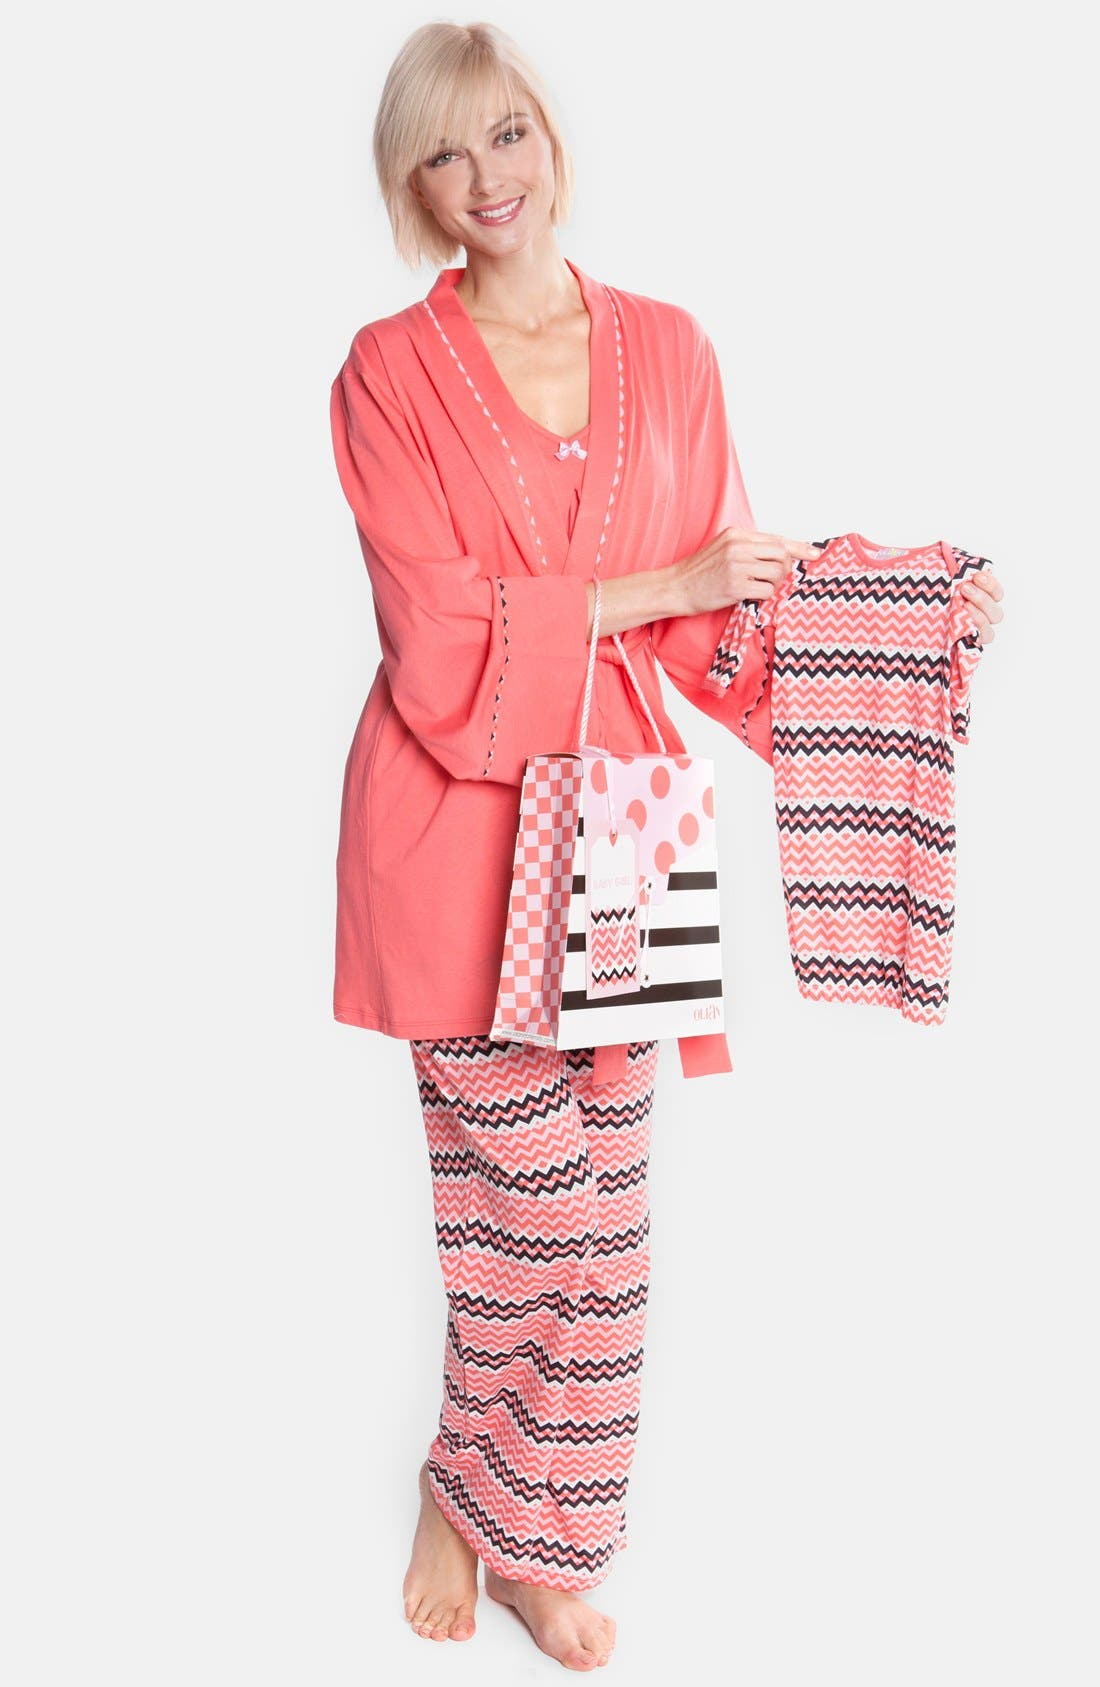 Olian Four-Piece Maternity Sleepwear Gift Set